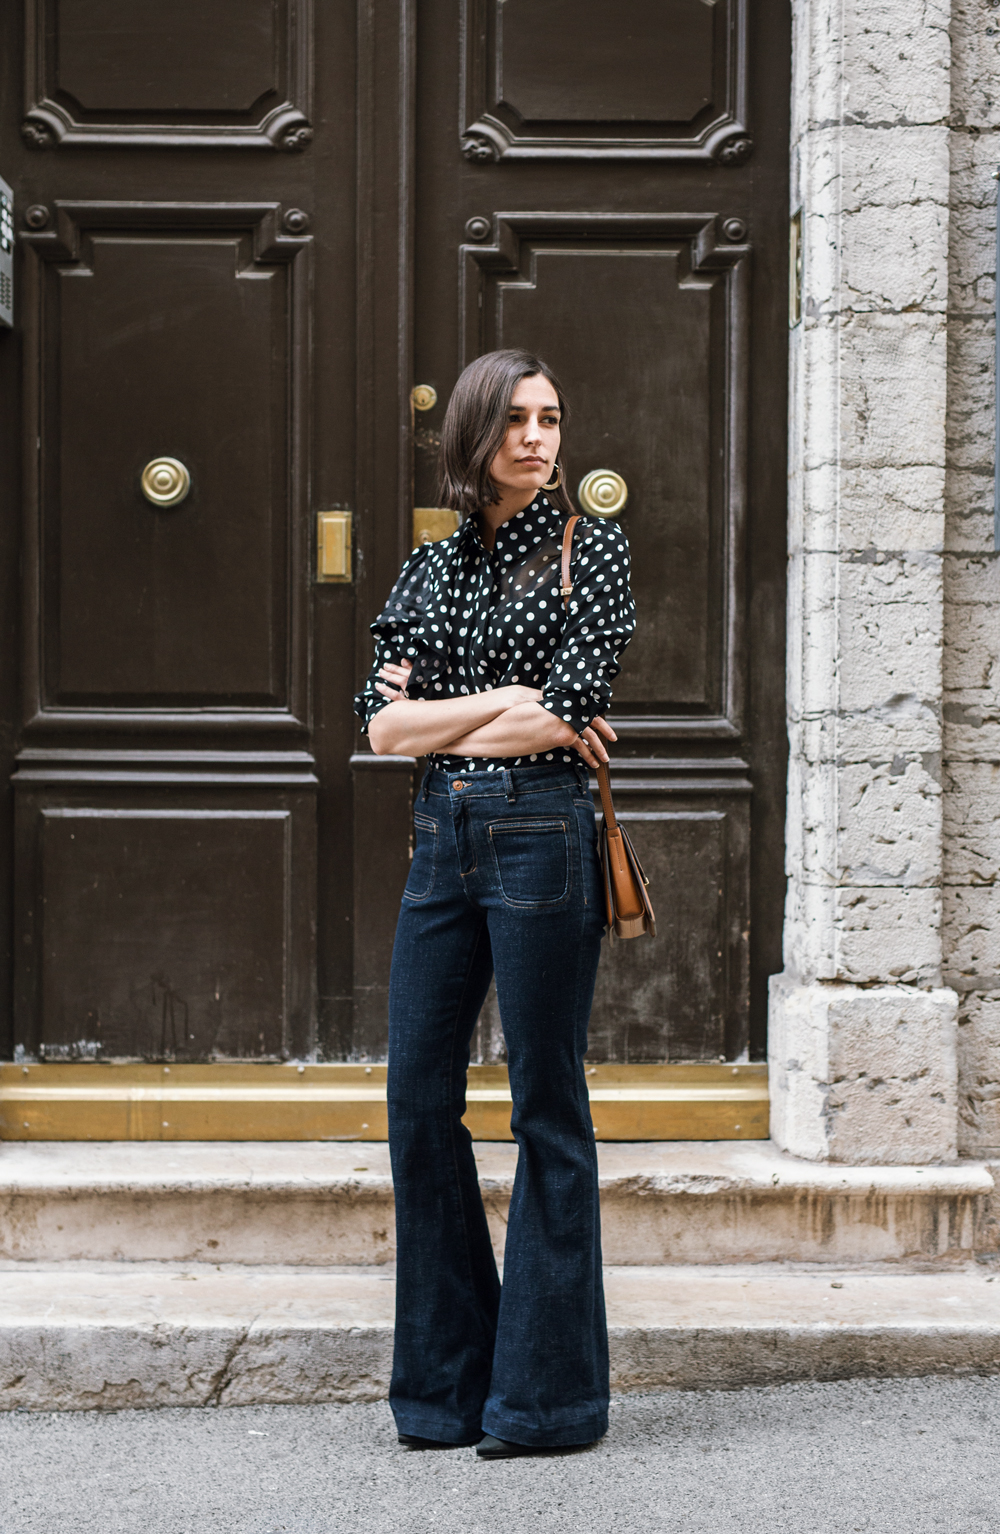 Polka dots: The feminine print we all need in our wardrobe